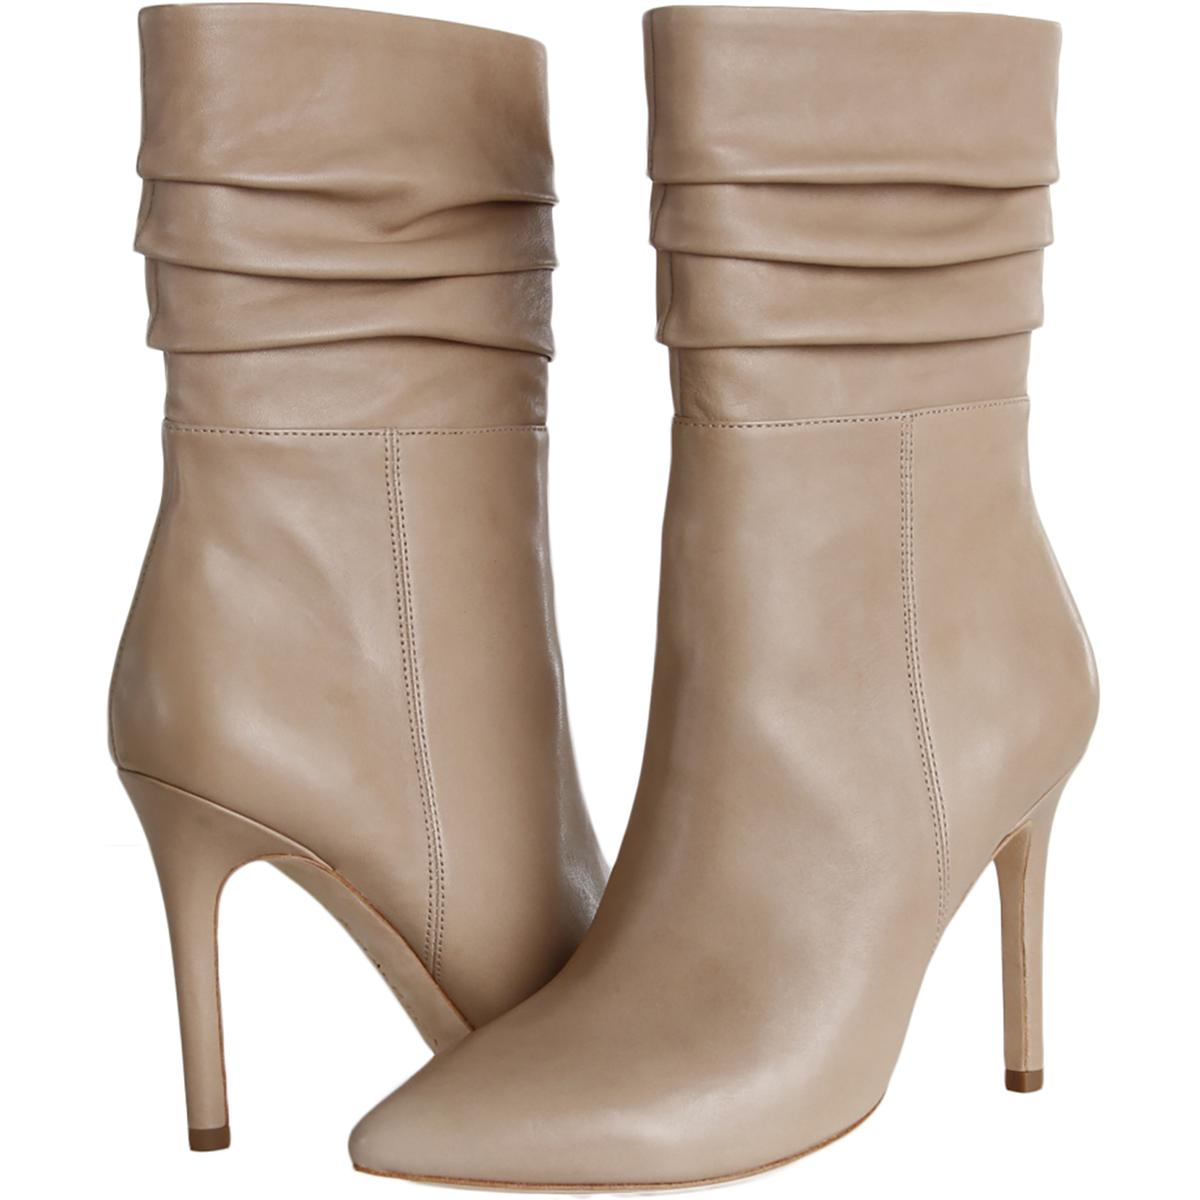 Halston-Heritage-Womens-Heather-Leather-Heels-Mid-Calf-Boots-Shoes-BHFO-1702 thumbnail 7